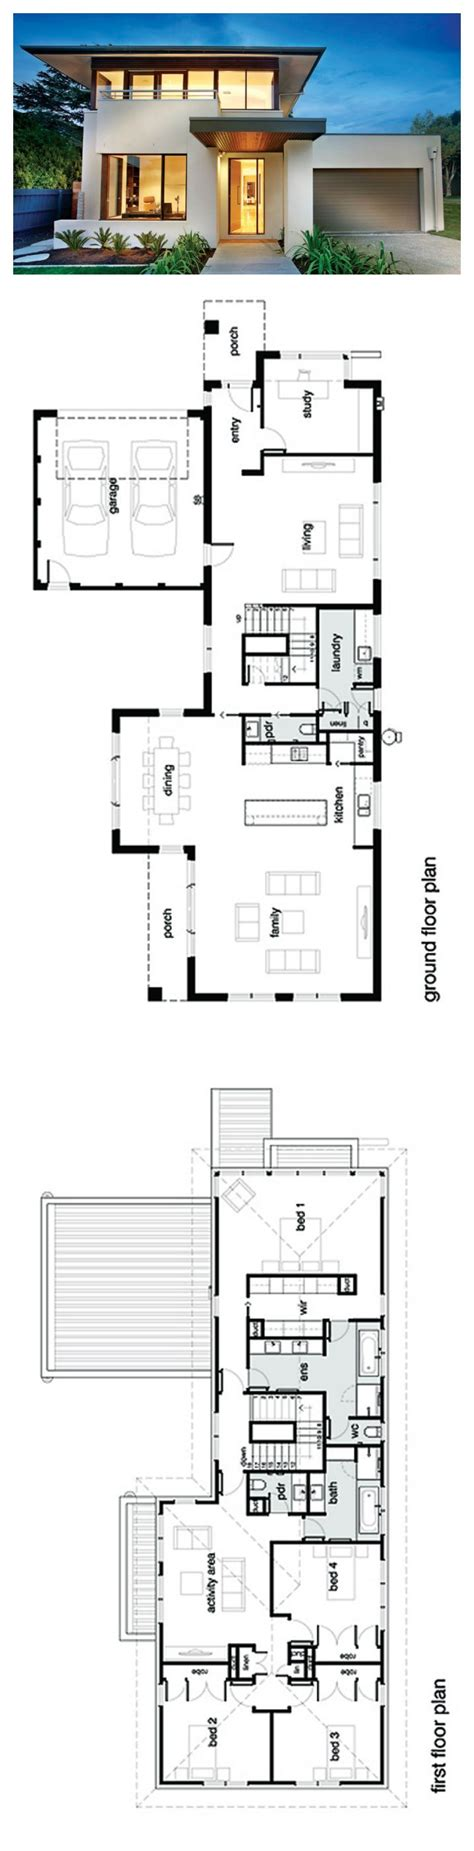 2 story modern house floor plans the 25 best ideas about modern house plans on pinterest